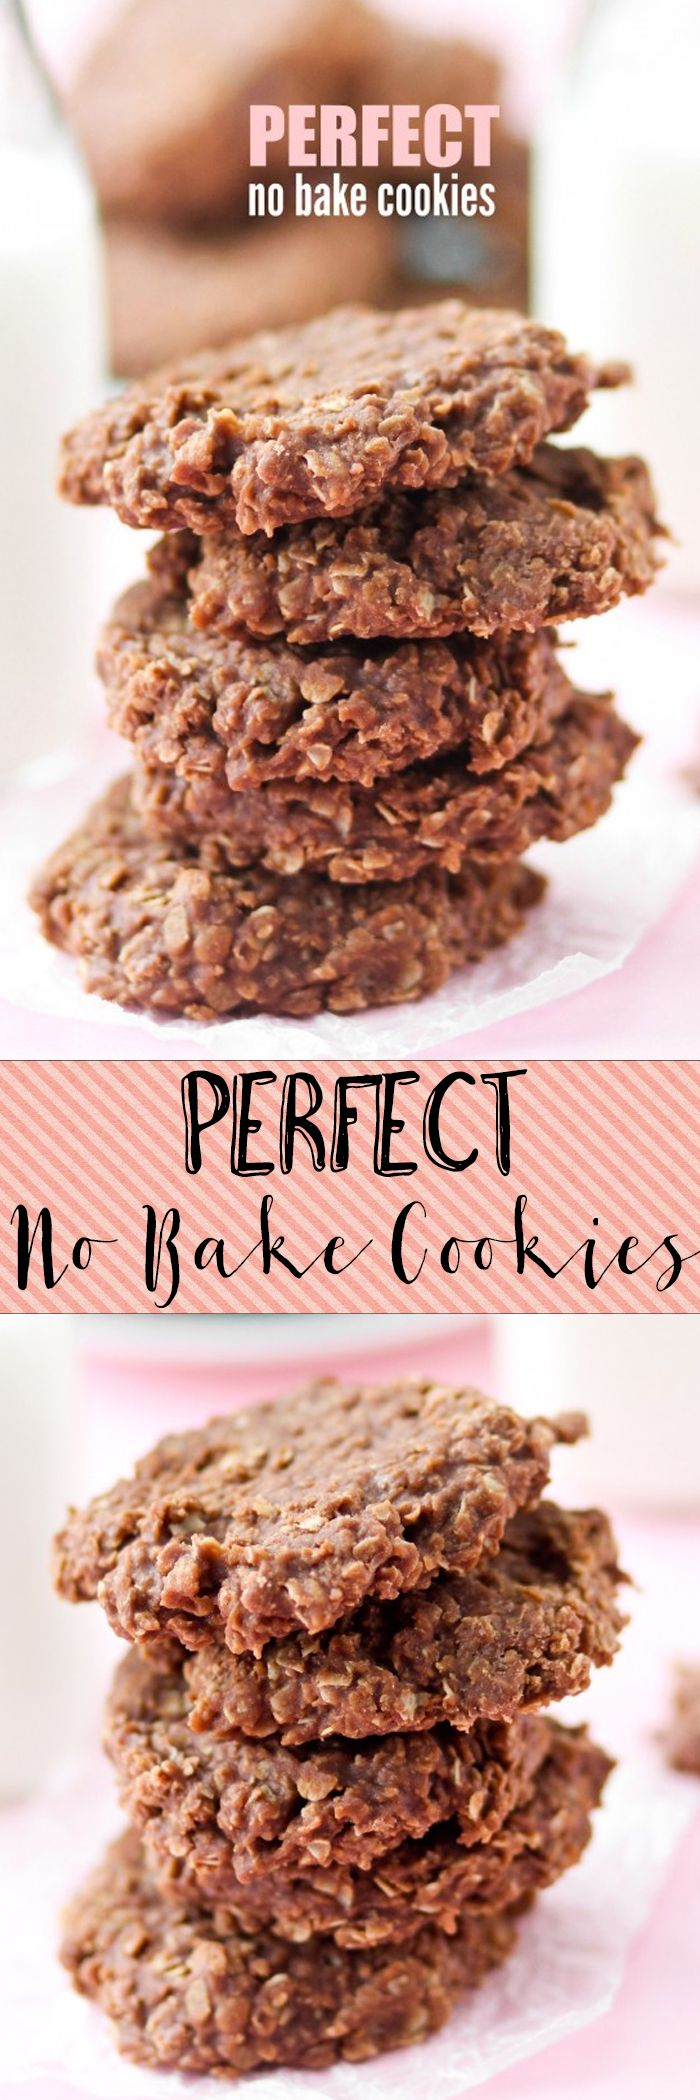 The PERFECT No Bake Cookie Recipe! These set up EVERY time!!